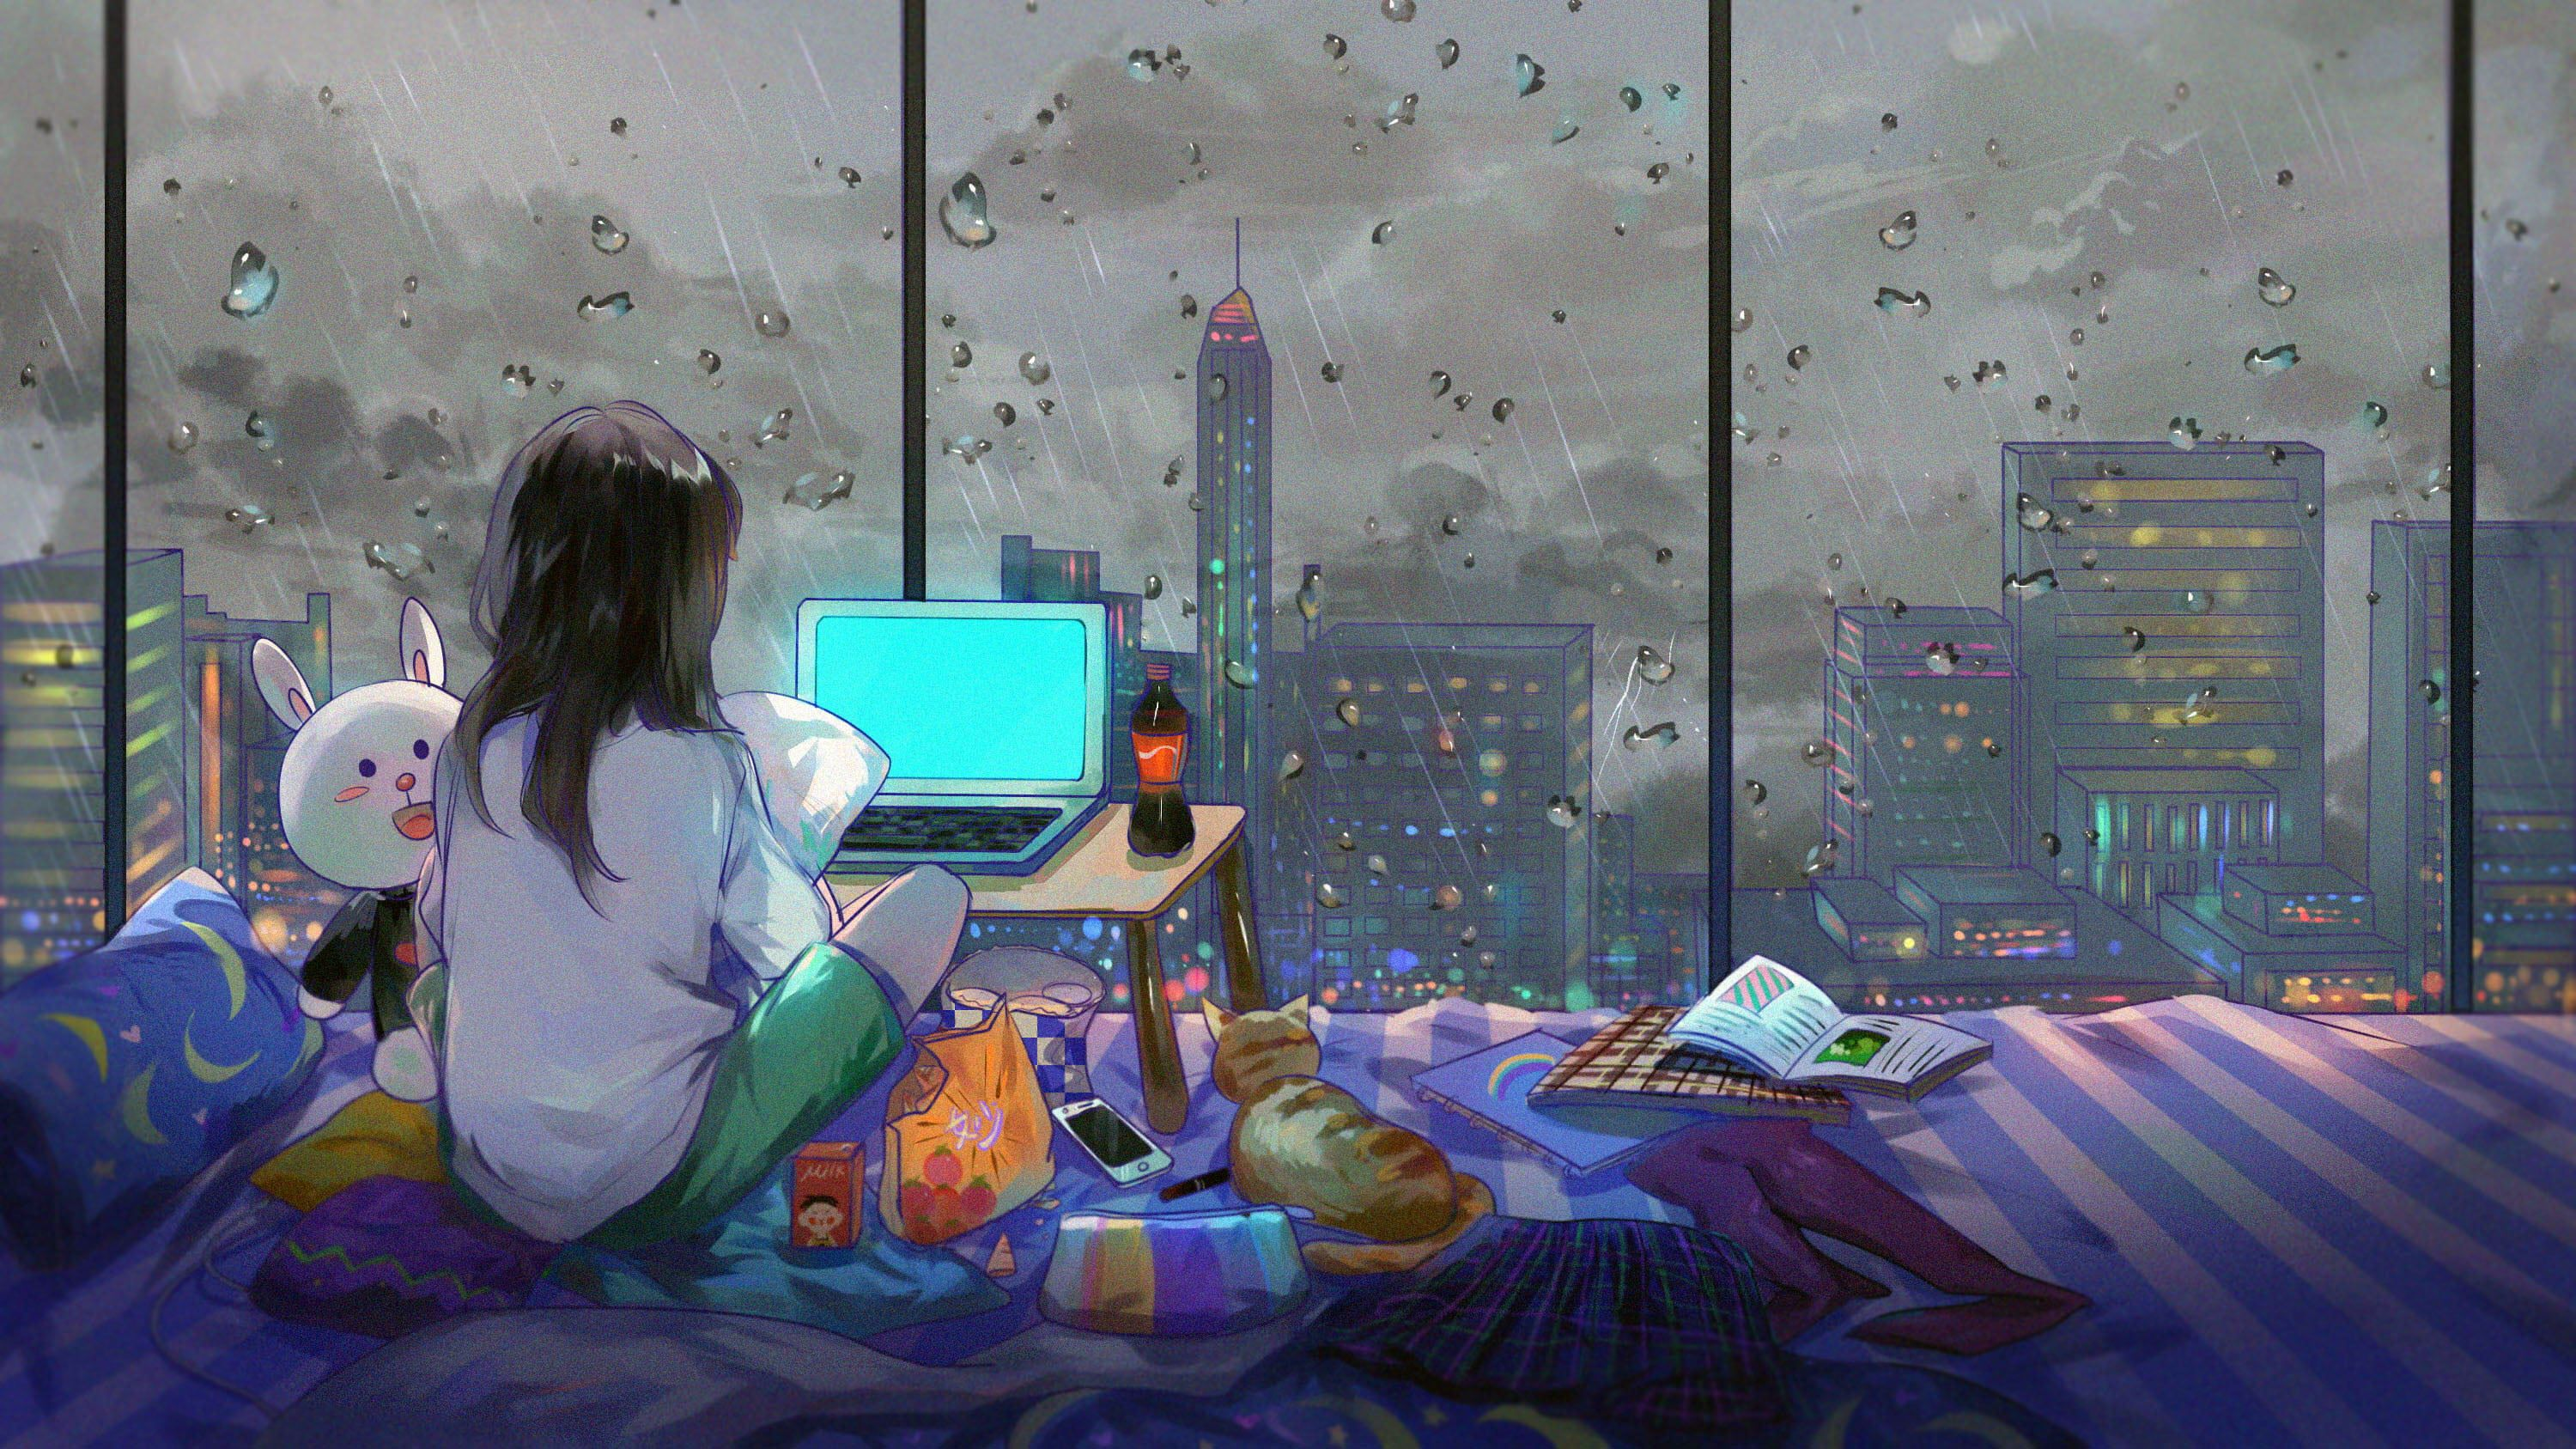 Girl Sitting On Bed Watching Laptop Computer Illustration Artwork City Anime Girls Room Anime Wallpaper Aesthetic Desktop Wallpaper Anime Computer Wallpaper